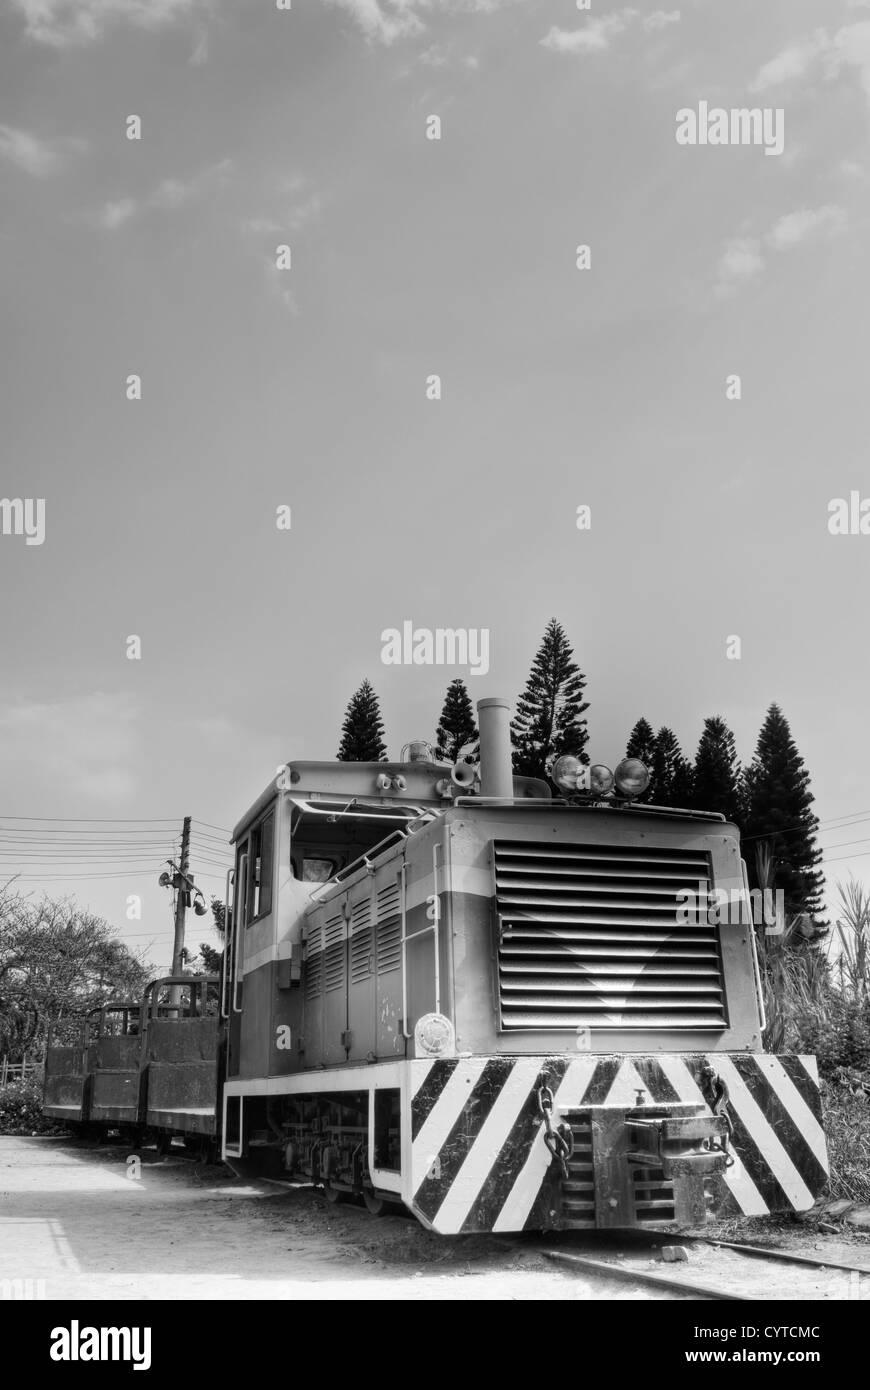 Locomotive of discard under sky in black and white tone. - Stock Image